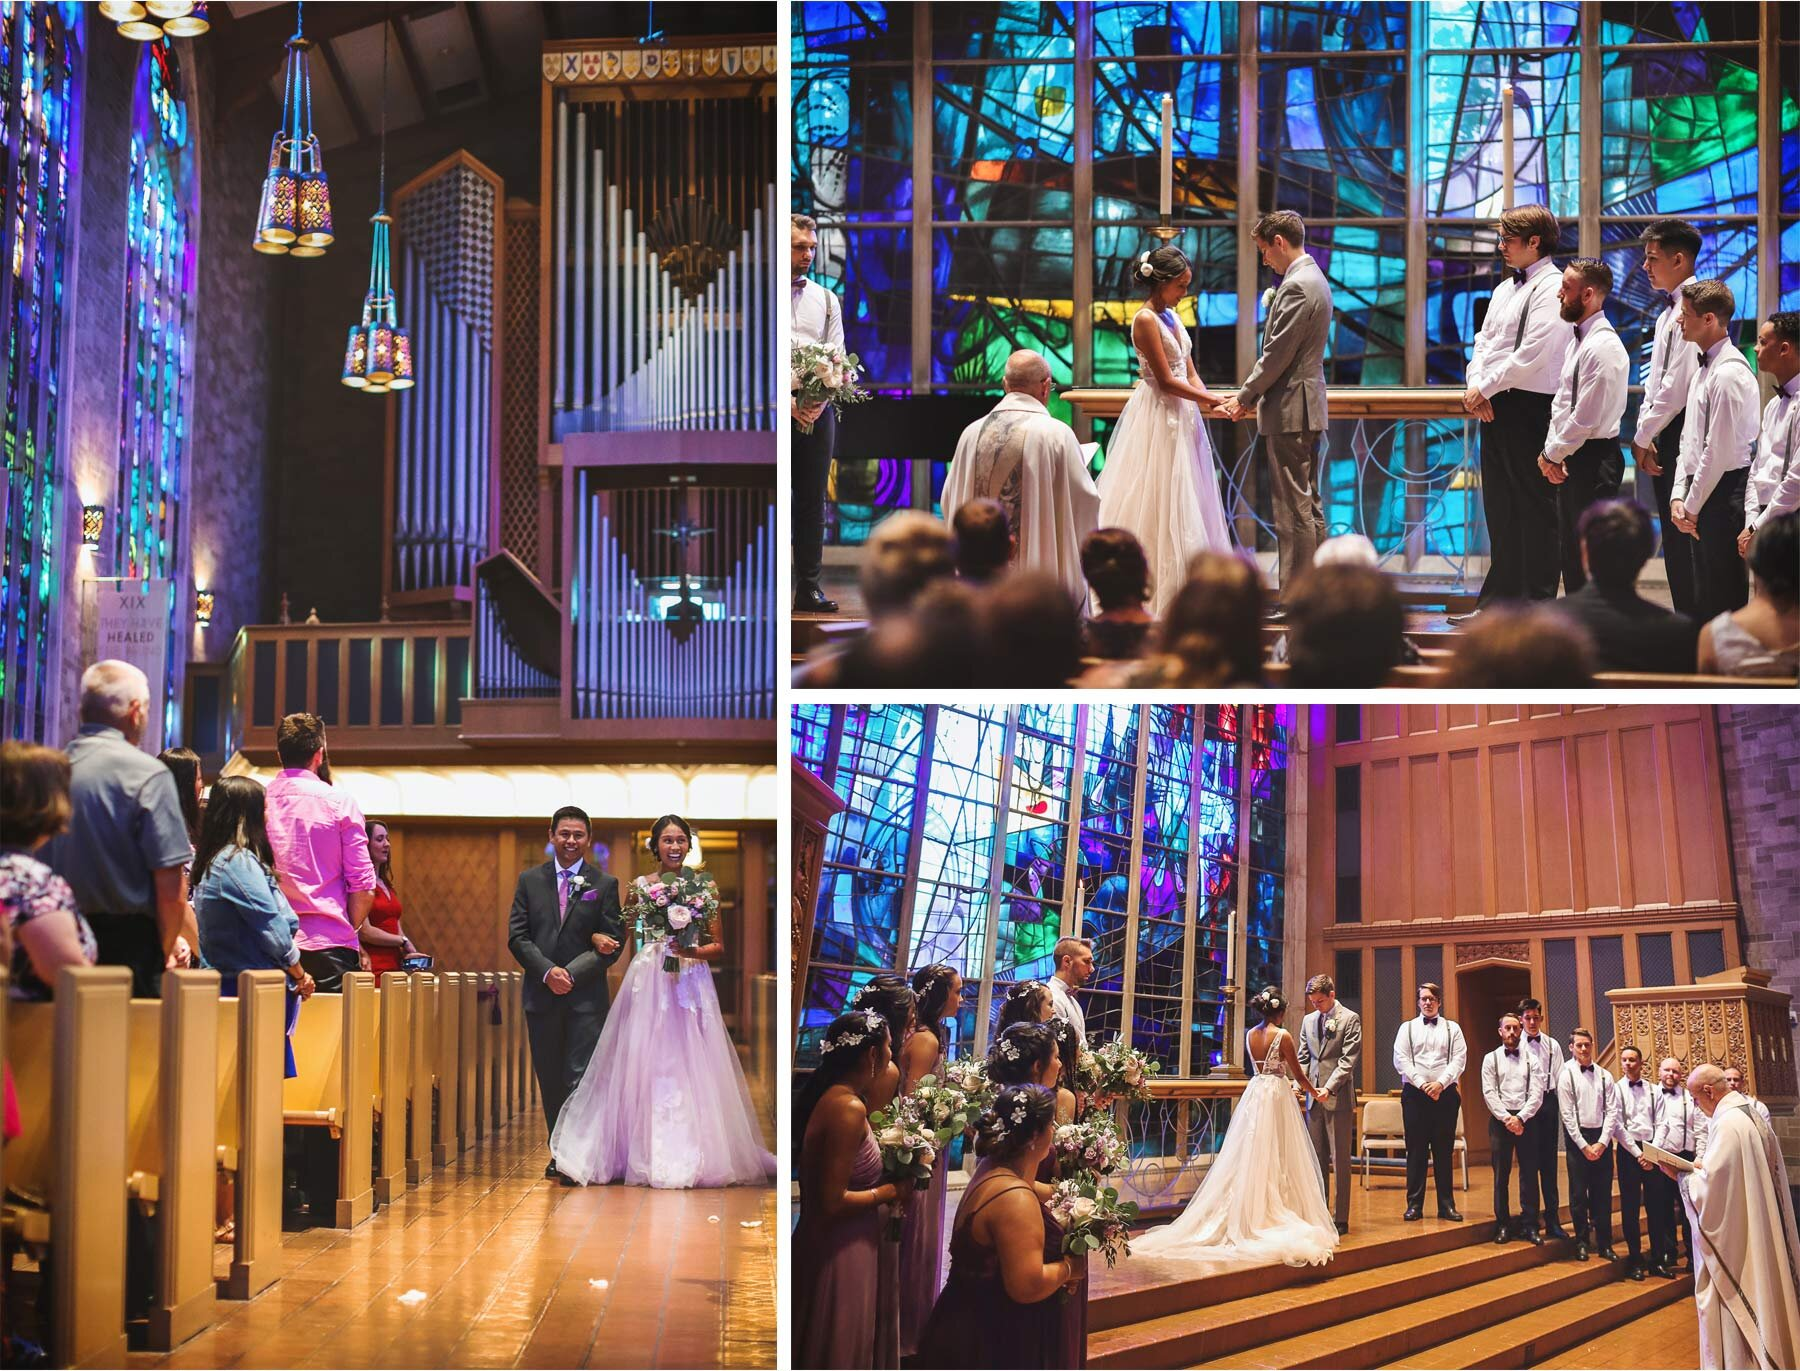 16-Wedding-by-Andrew-Vick-Photography-Chicago-Illinois-Alice-Millar-Chapel-Groom-Bride-Stained-Glass-Ceremony-Ashley-and-Nicholas.jpg